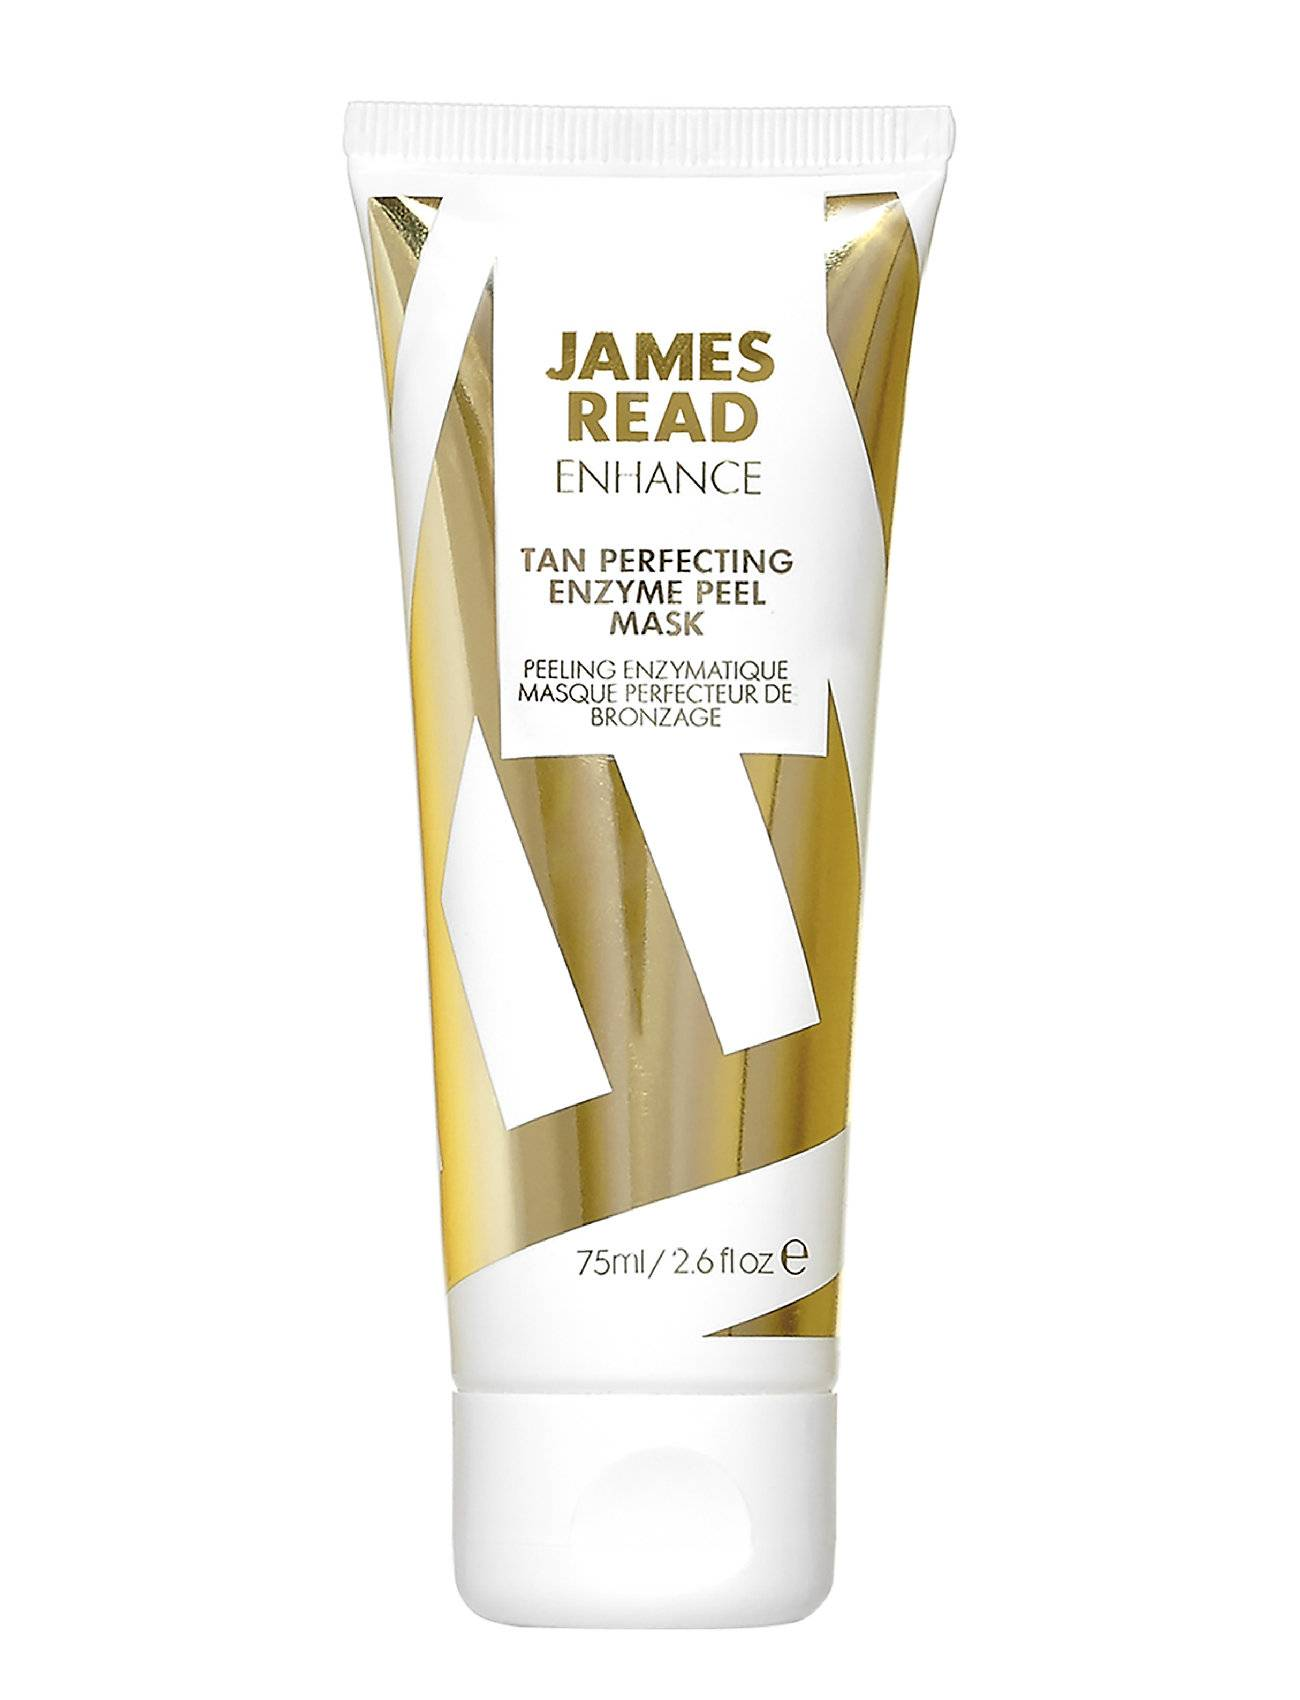 James Read Enzyme Peel Mask Beauty WOMEN Skin Care Sun Products Self Tanners Nude James Read